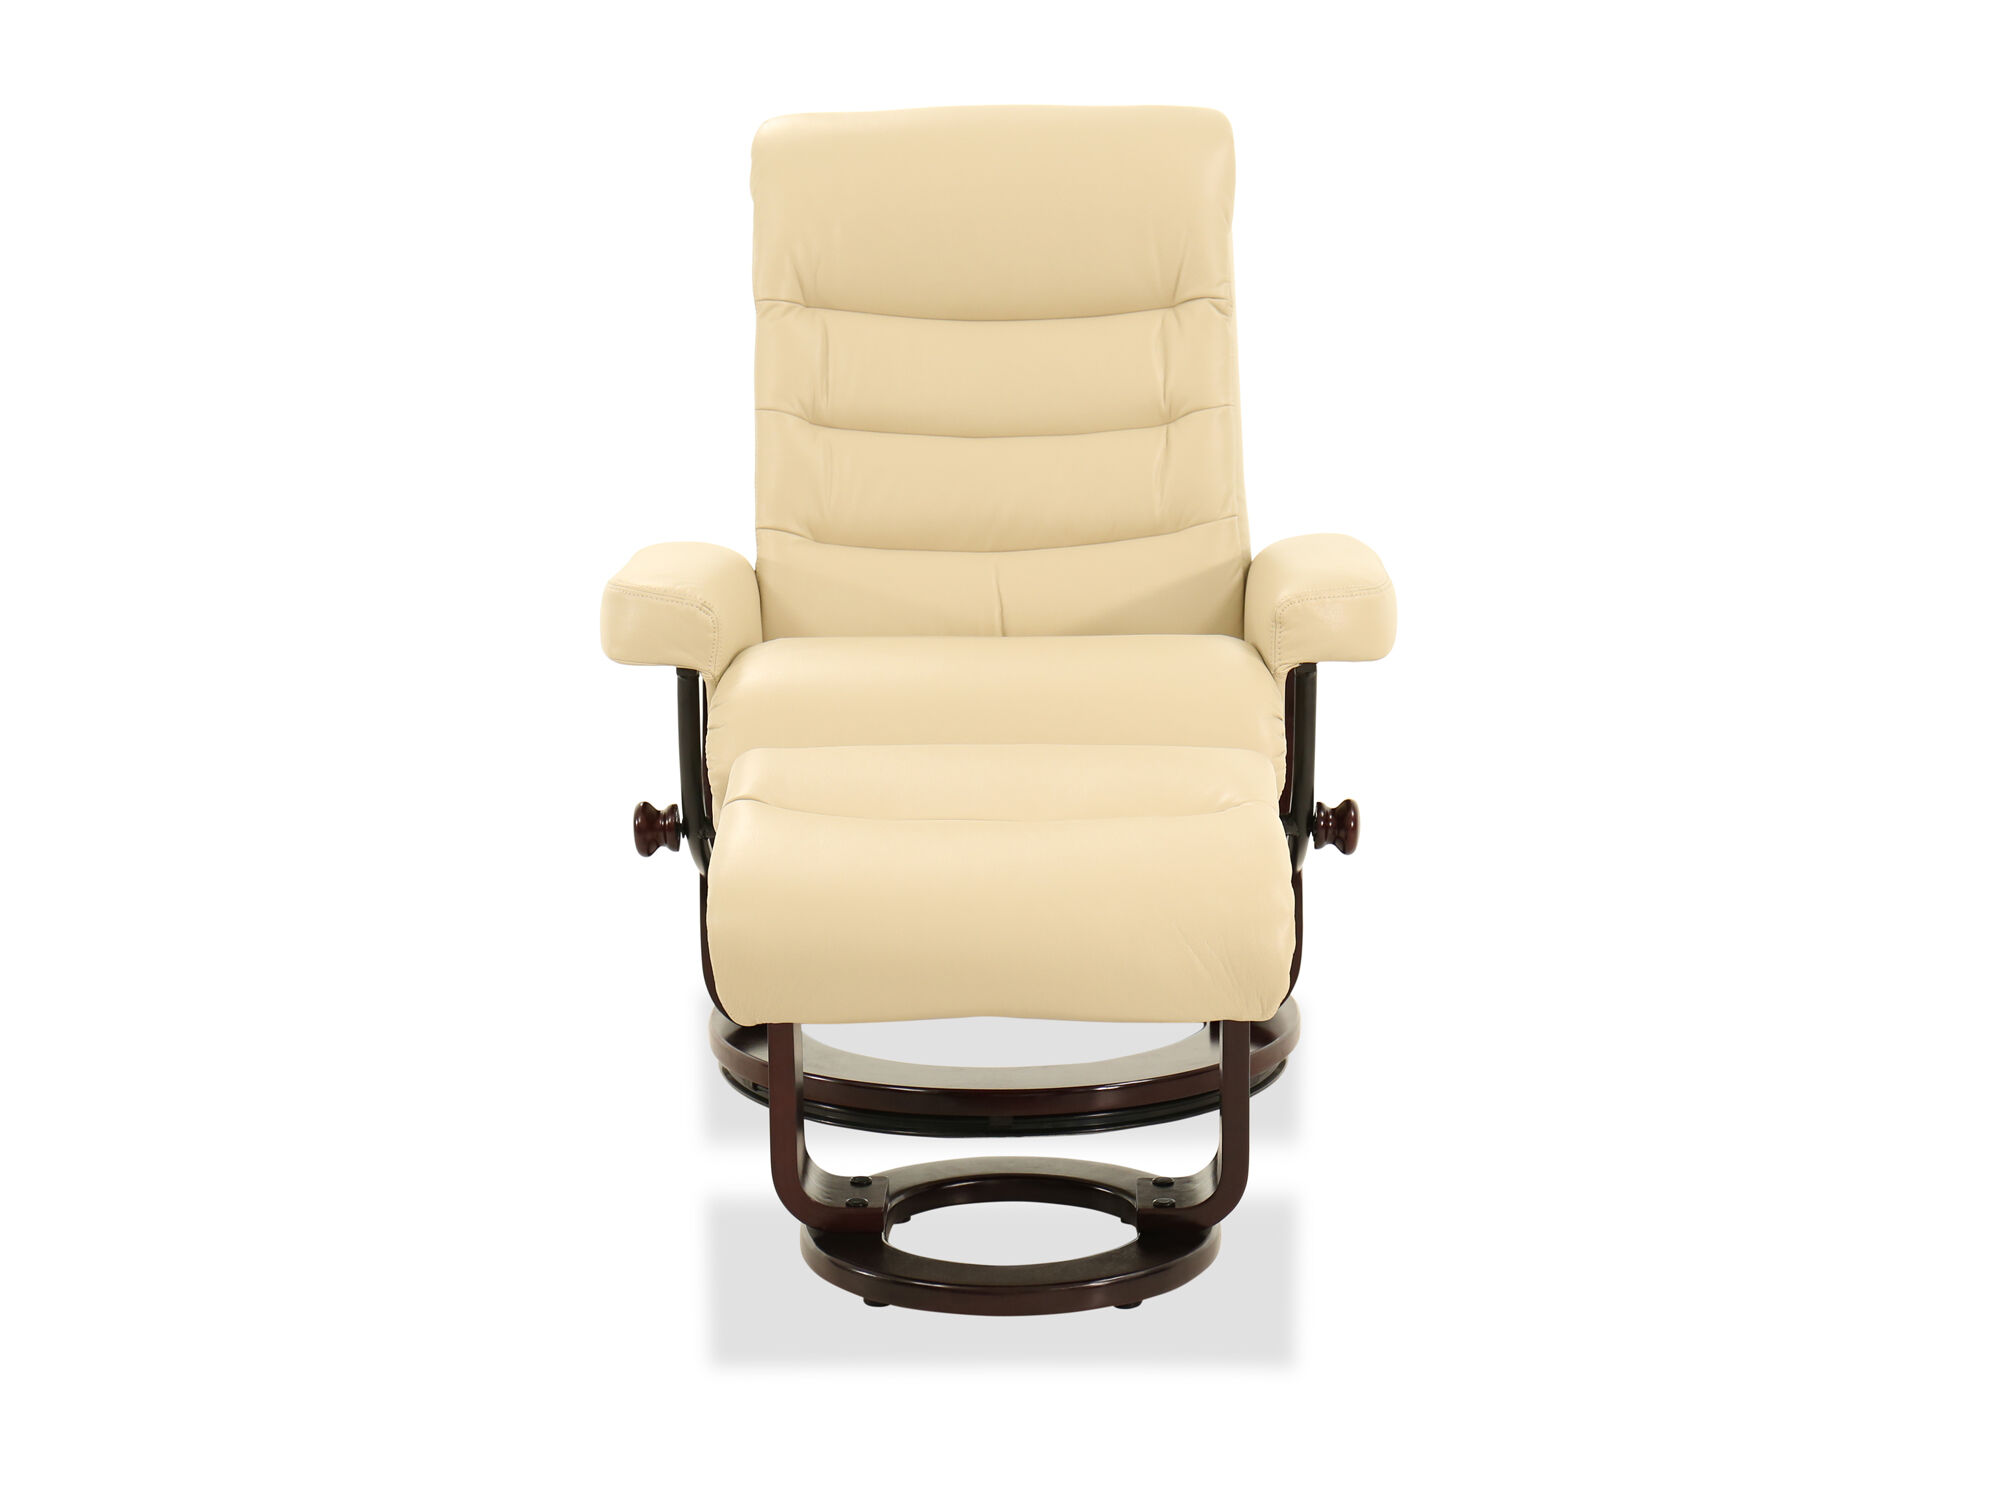 Reclining Chair And Ottoman Quilted Leather Reclining Chair And Ottoman In Cream